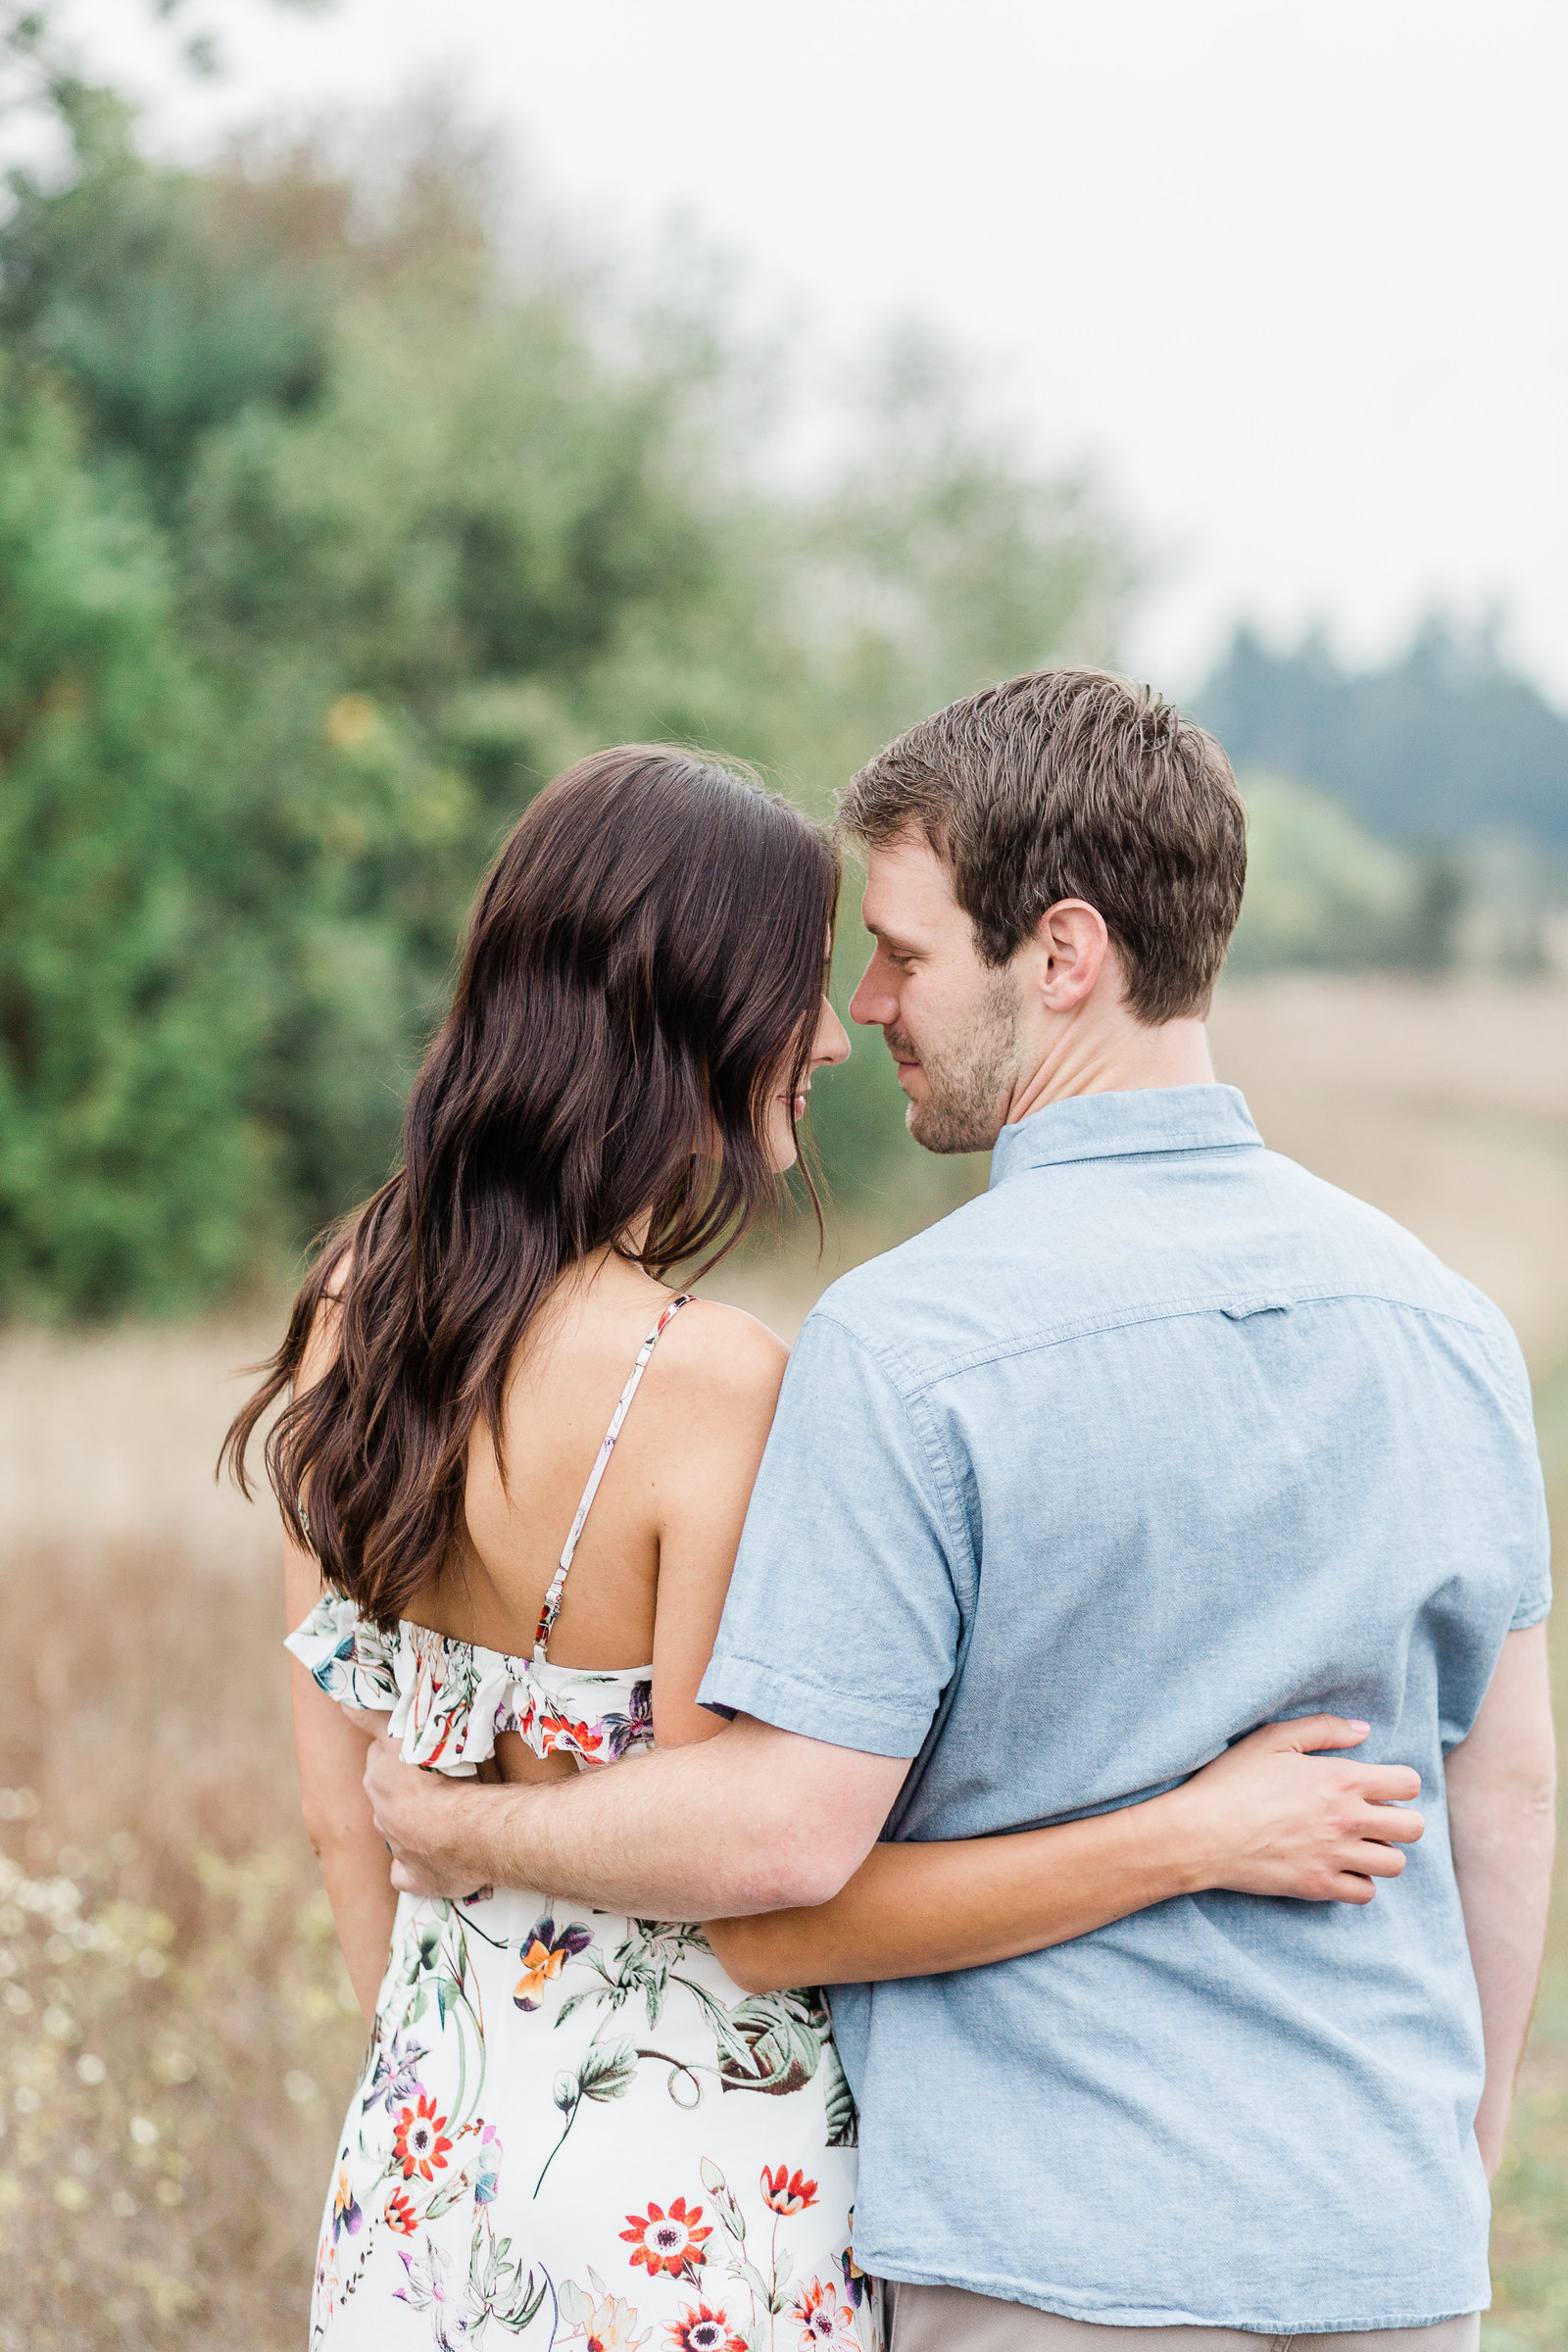 Taylor-TJ-Engagements-Georgia-Ruth-Photography-43